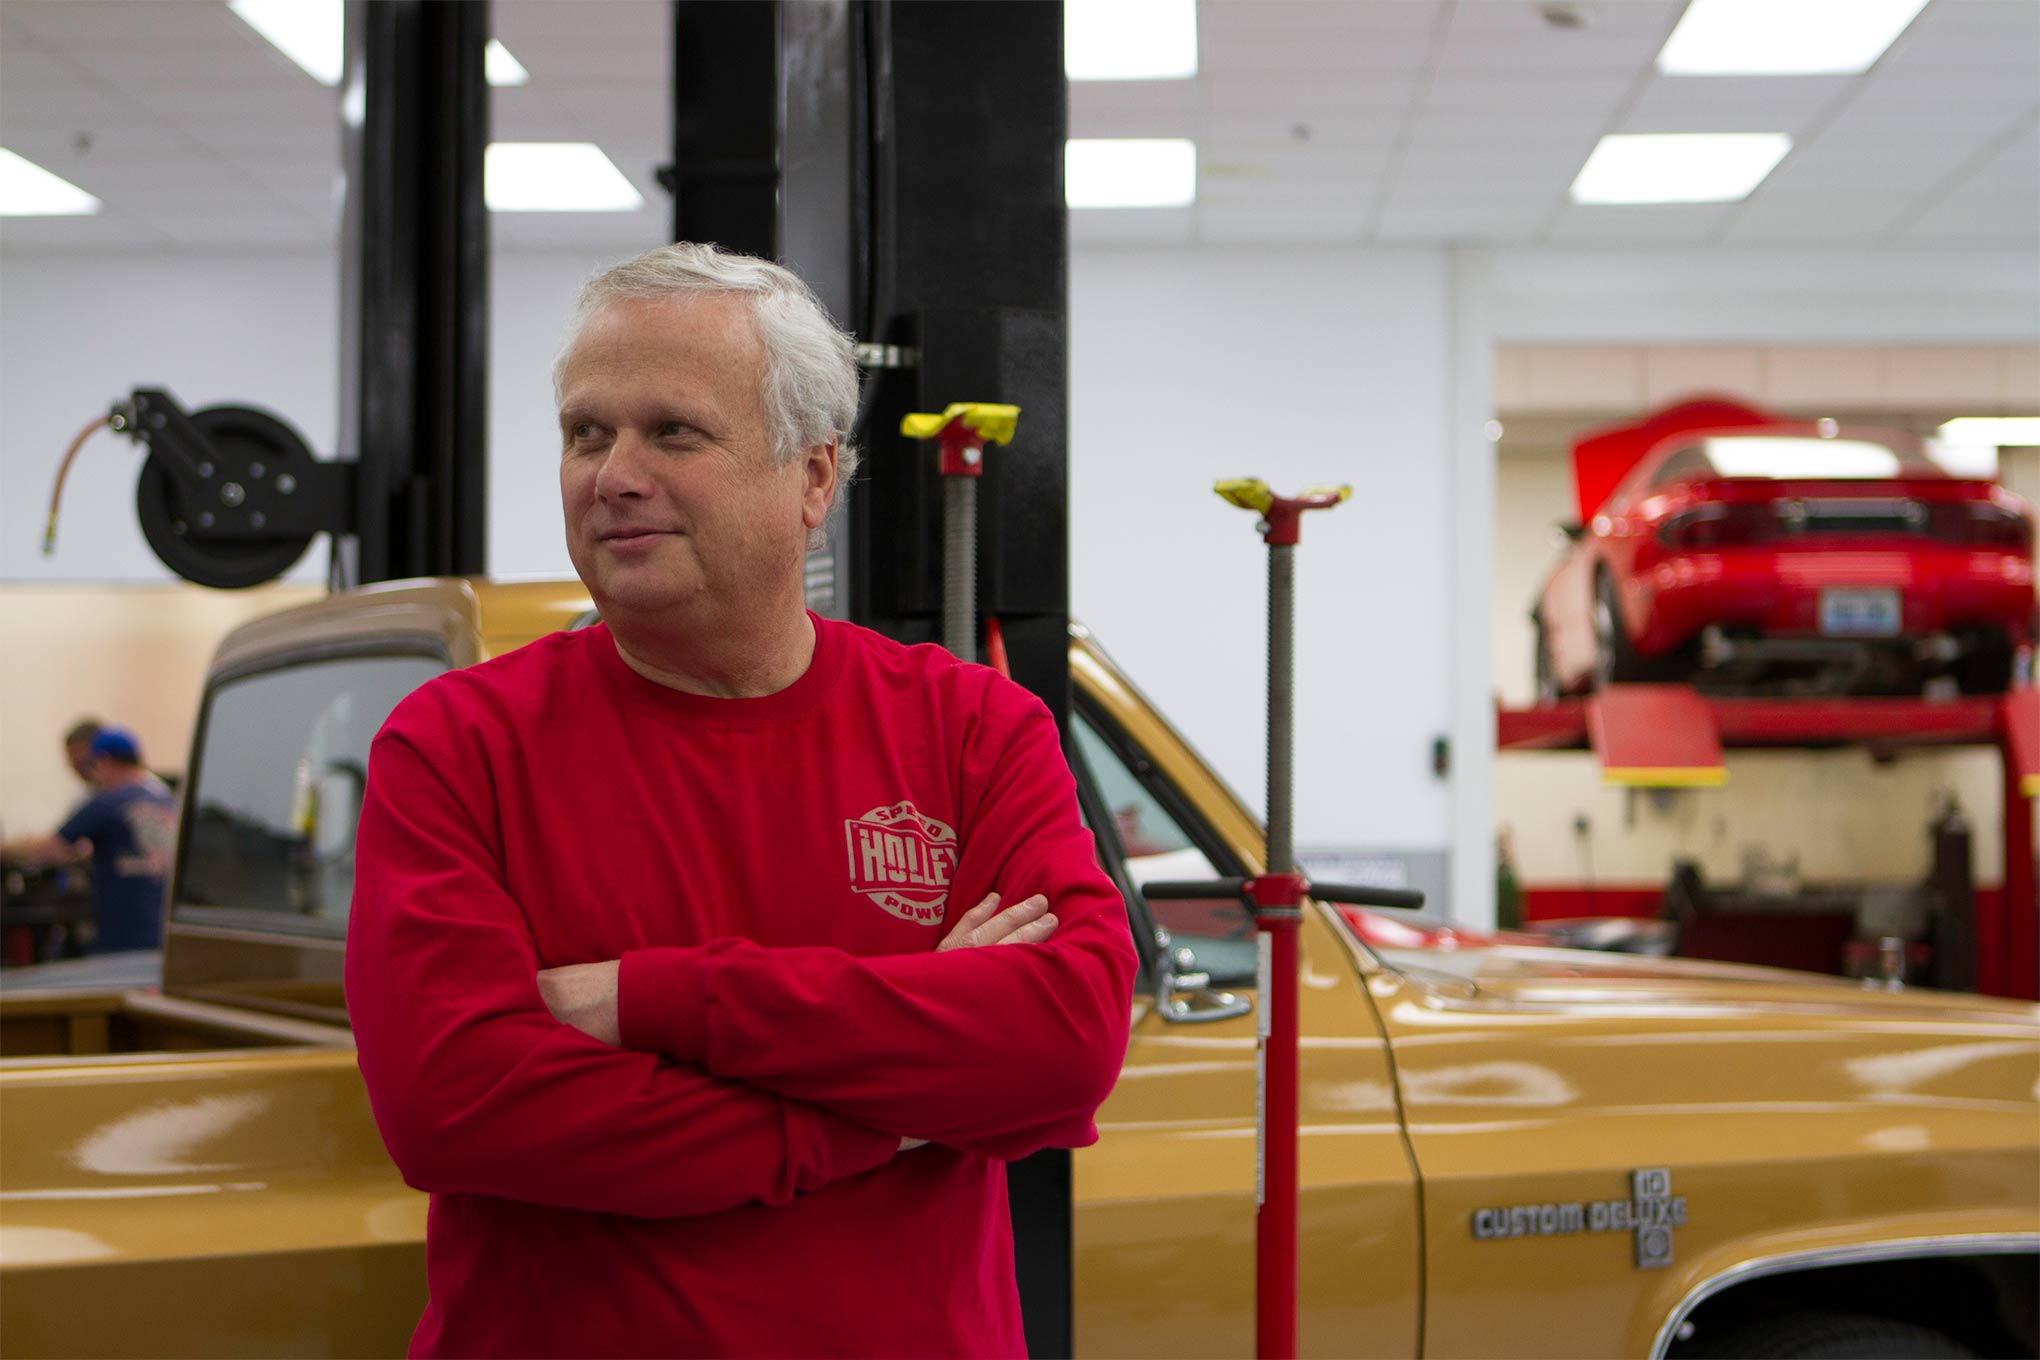 Tom Tomlinson is a gearhead to the core. He TIG-welds, wrenches, and designs his own parts. So when Holley tools up a new floorpan to put a T56 six-speed in a second-generation F-car, know that it's because its CEO needed one for his swap—and we all get the benefits of a car guy running a large aftermarket company.